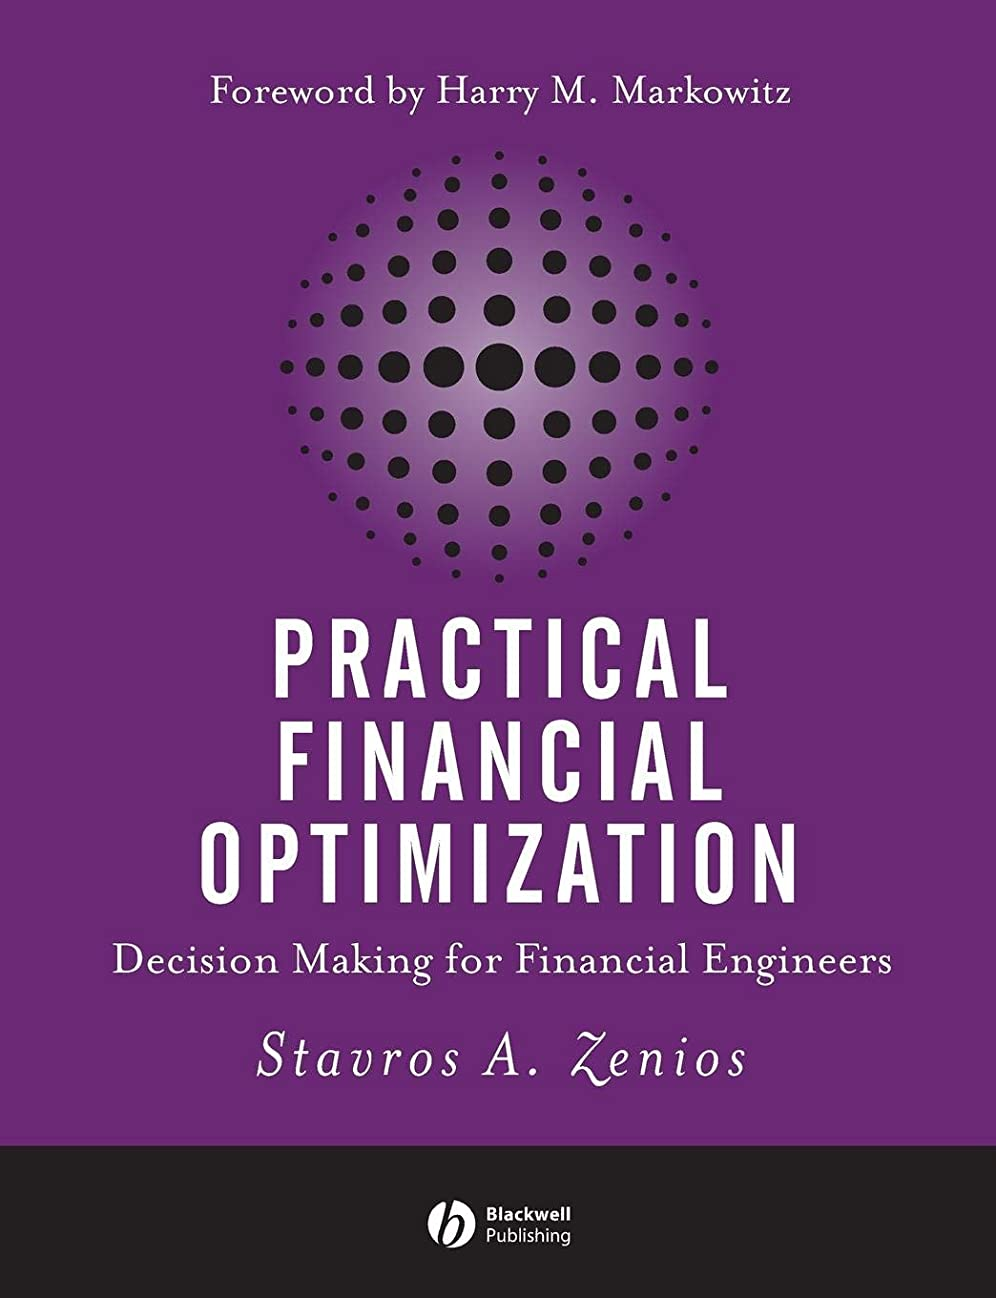 隠す無限大著作権Practical Financial Optimization: Decision Making for Financial Engineers